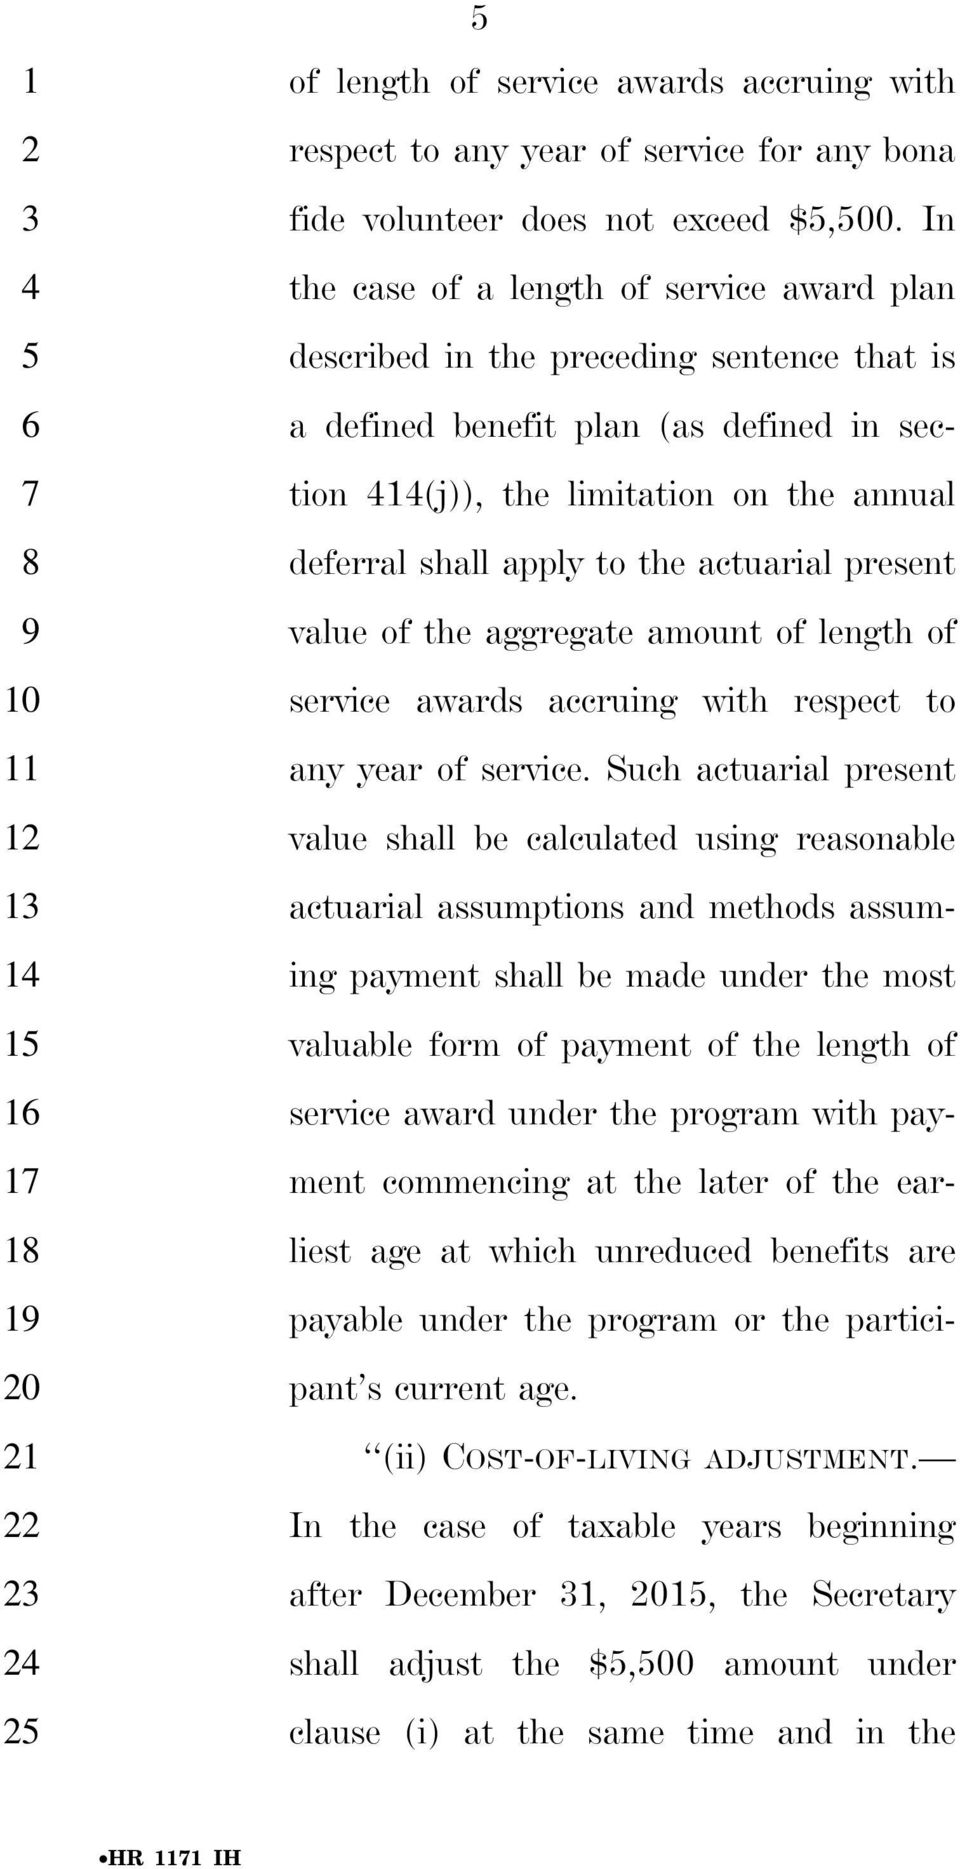 the actuarial present value of the aggregate amount of length of service awards accruing with respect to any year of service.